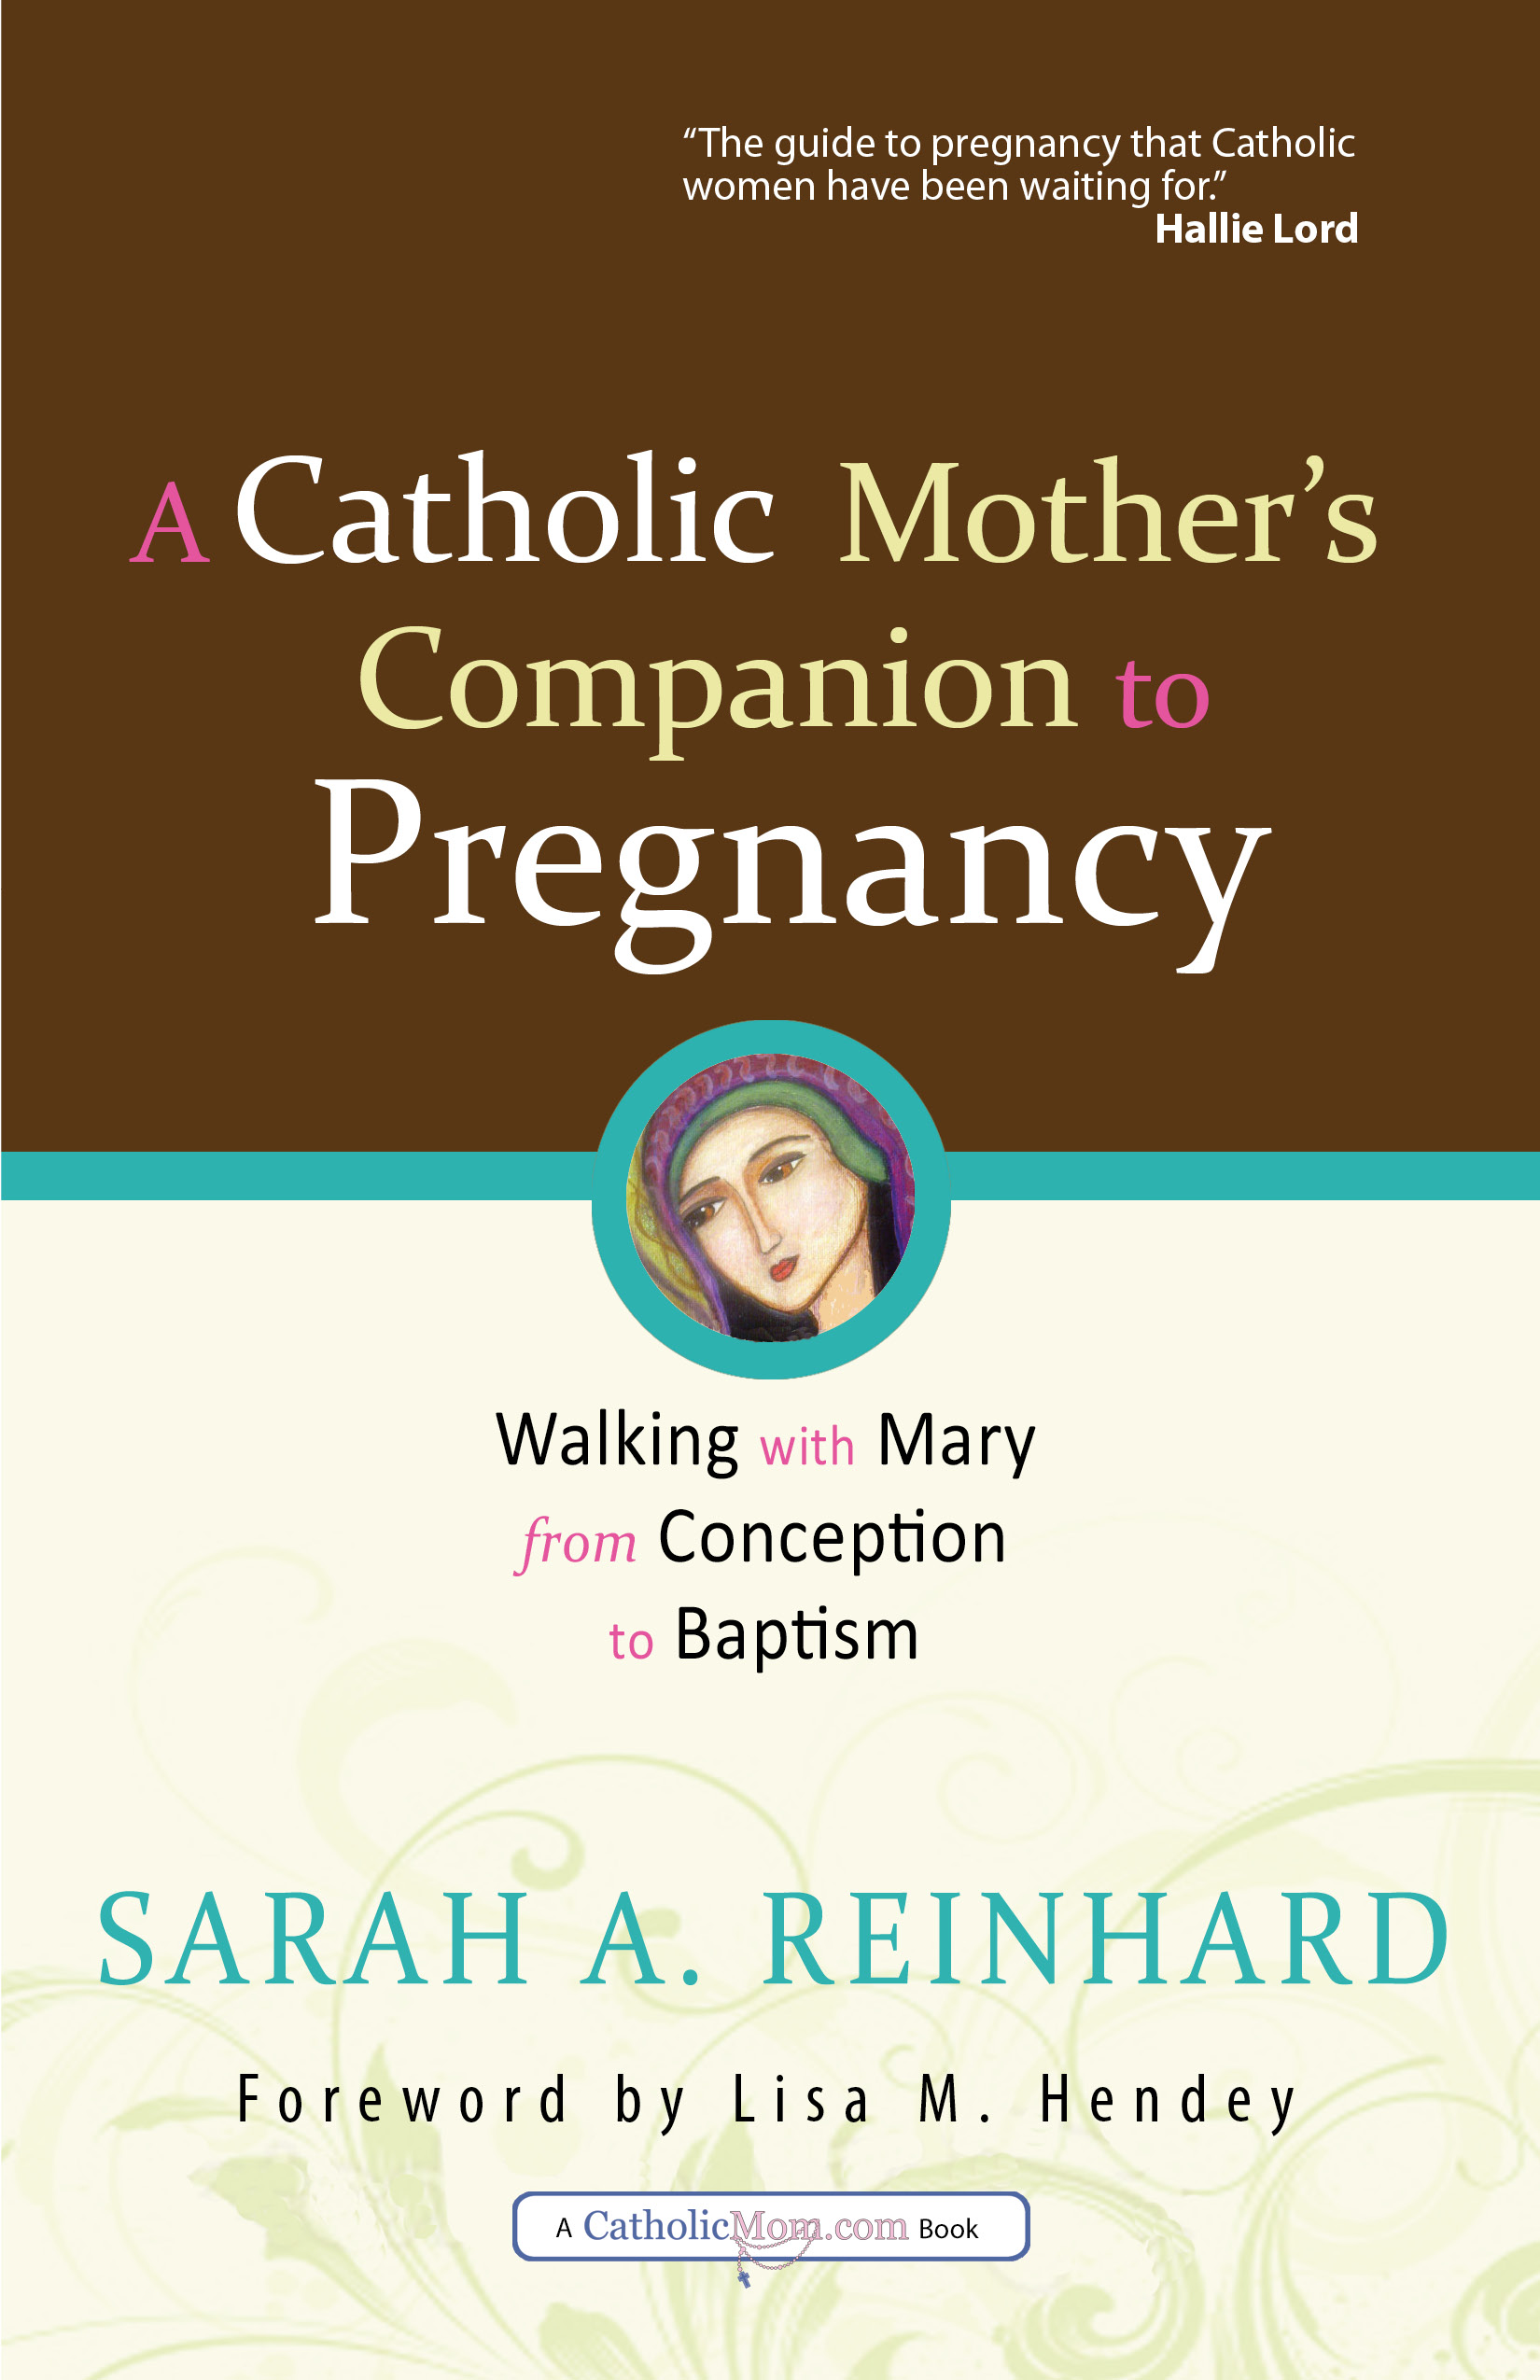 Sex while pregnant a catholic perspective